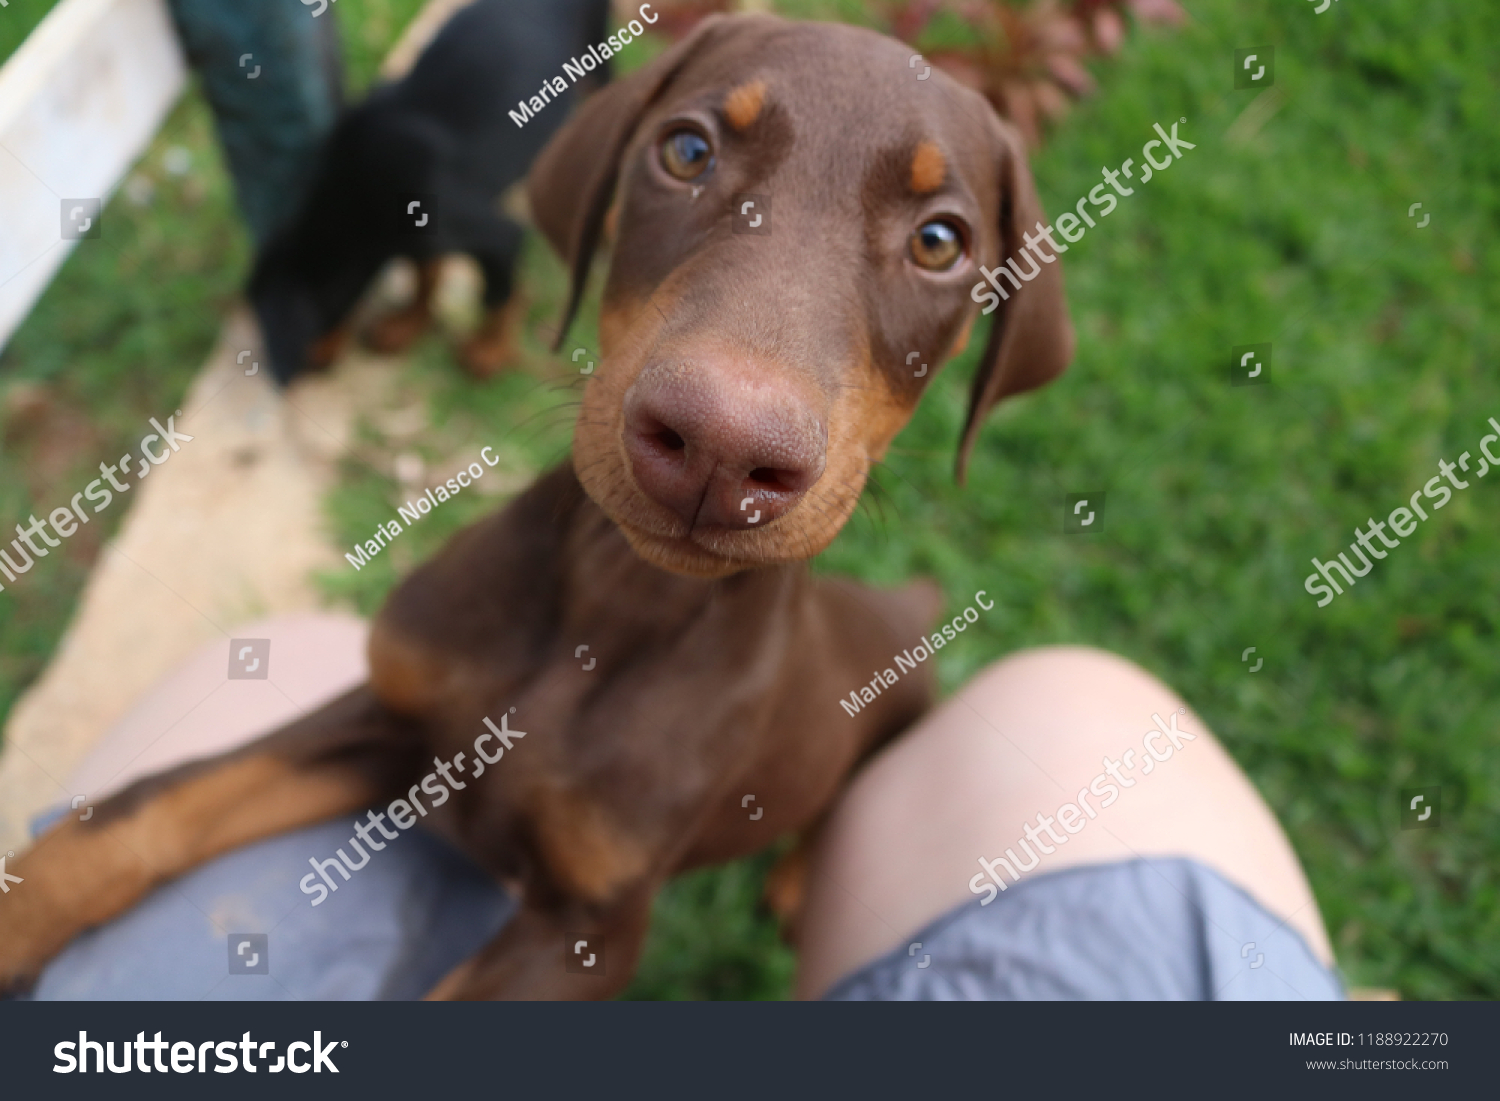 Baby Dobermans Super Cute Puppies Stock Photo Edit Now 1188922270